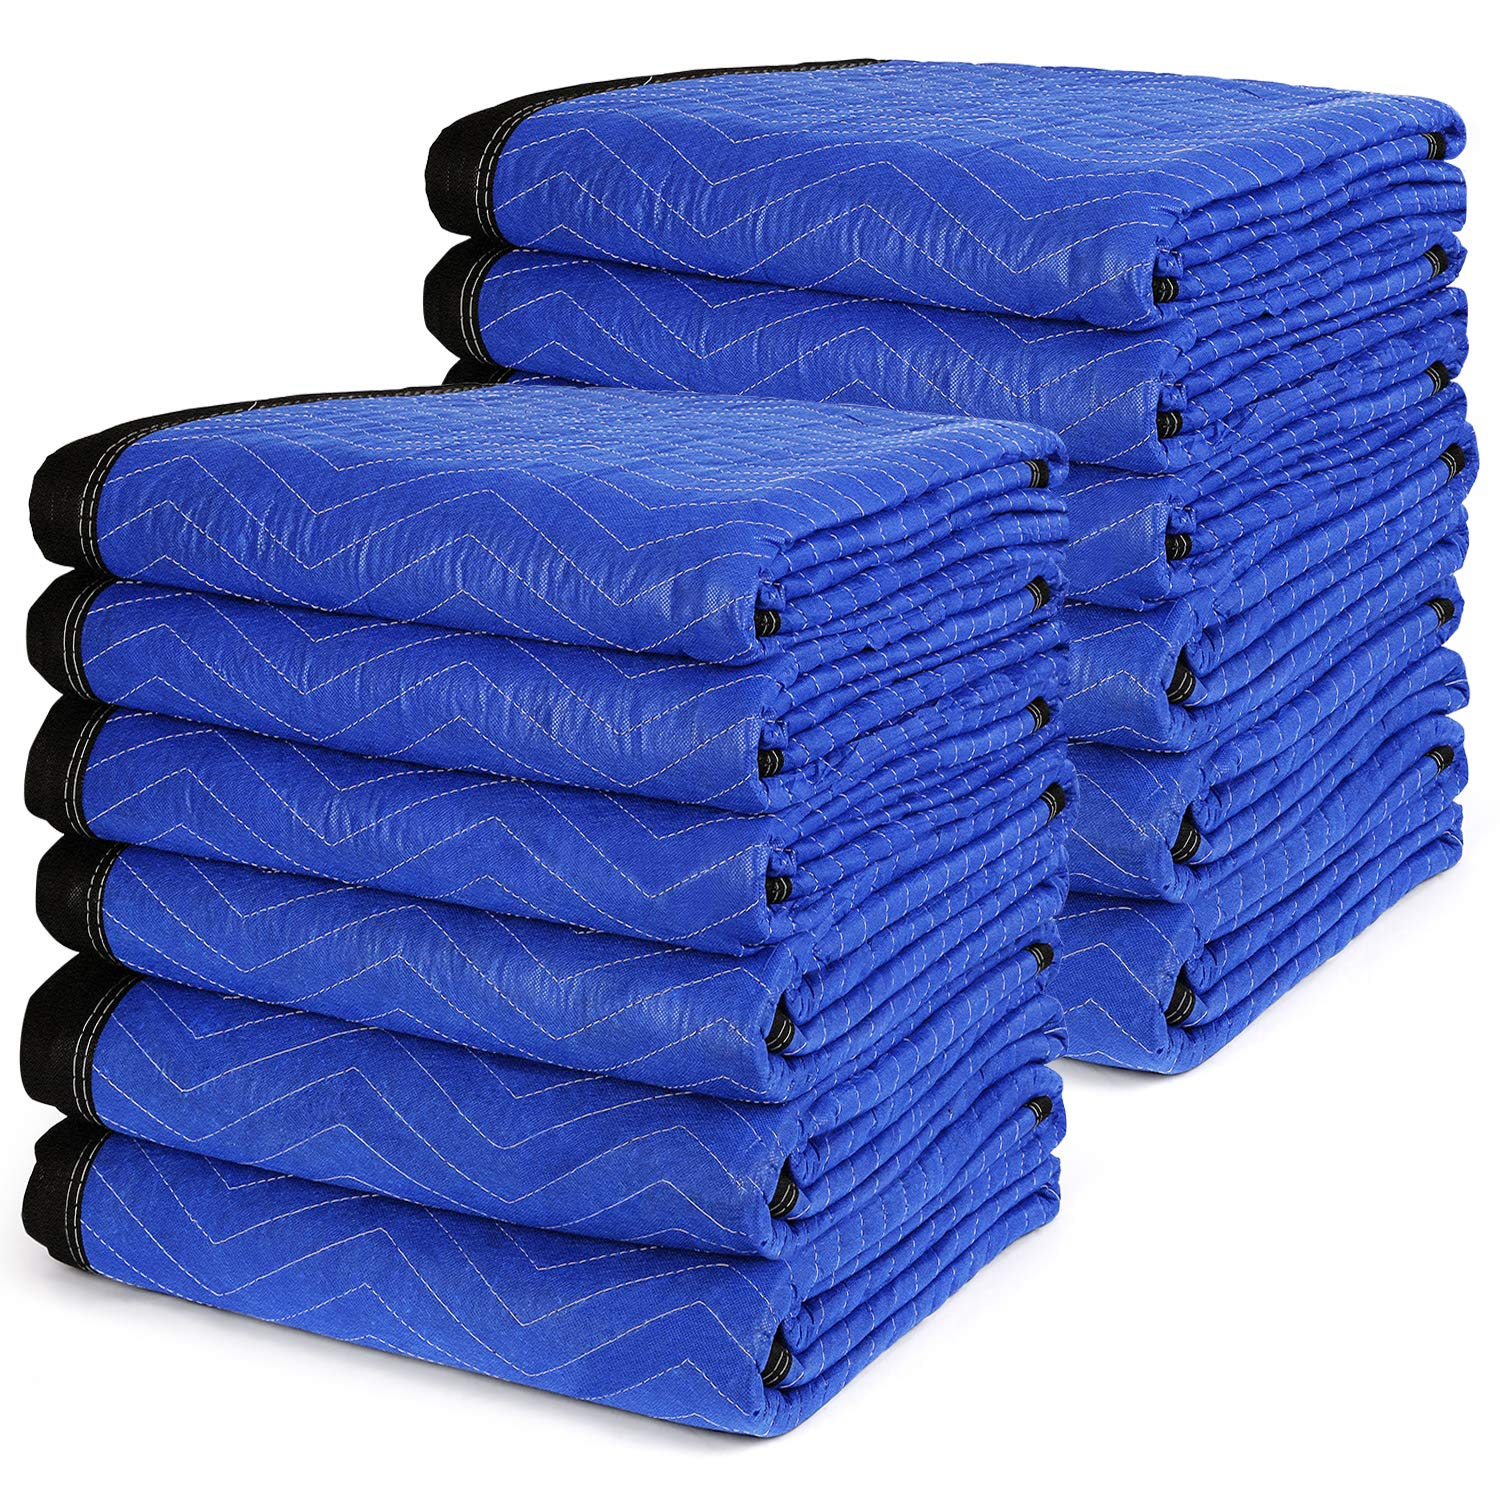 12 Moving Packing Blankets 72'' x 80'' - TUSY Heavy Duty Furniture Moving Pads 35lb, Ultra Thick Professional Quilted Shipping Blanket by TUSY